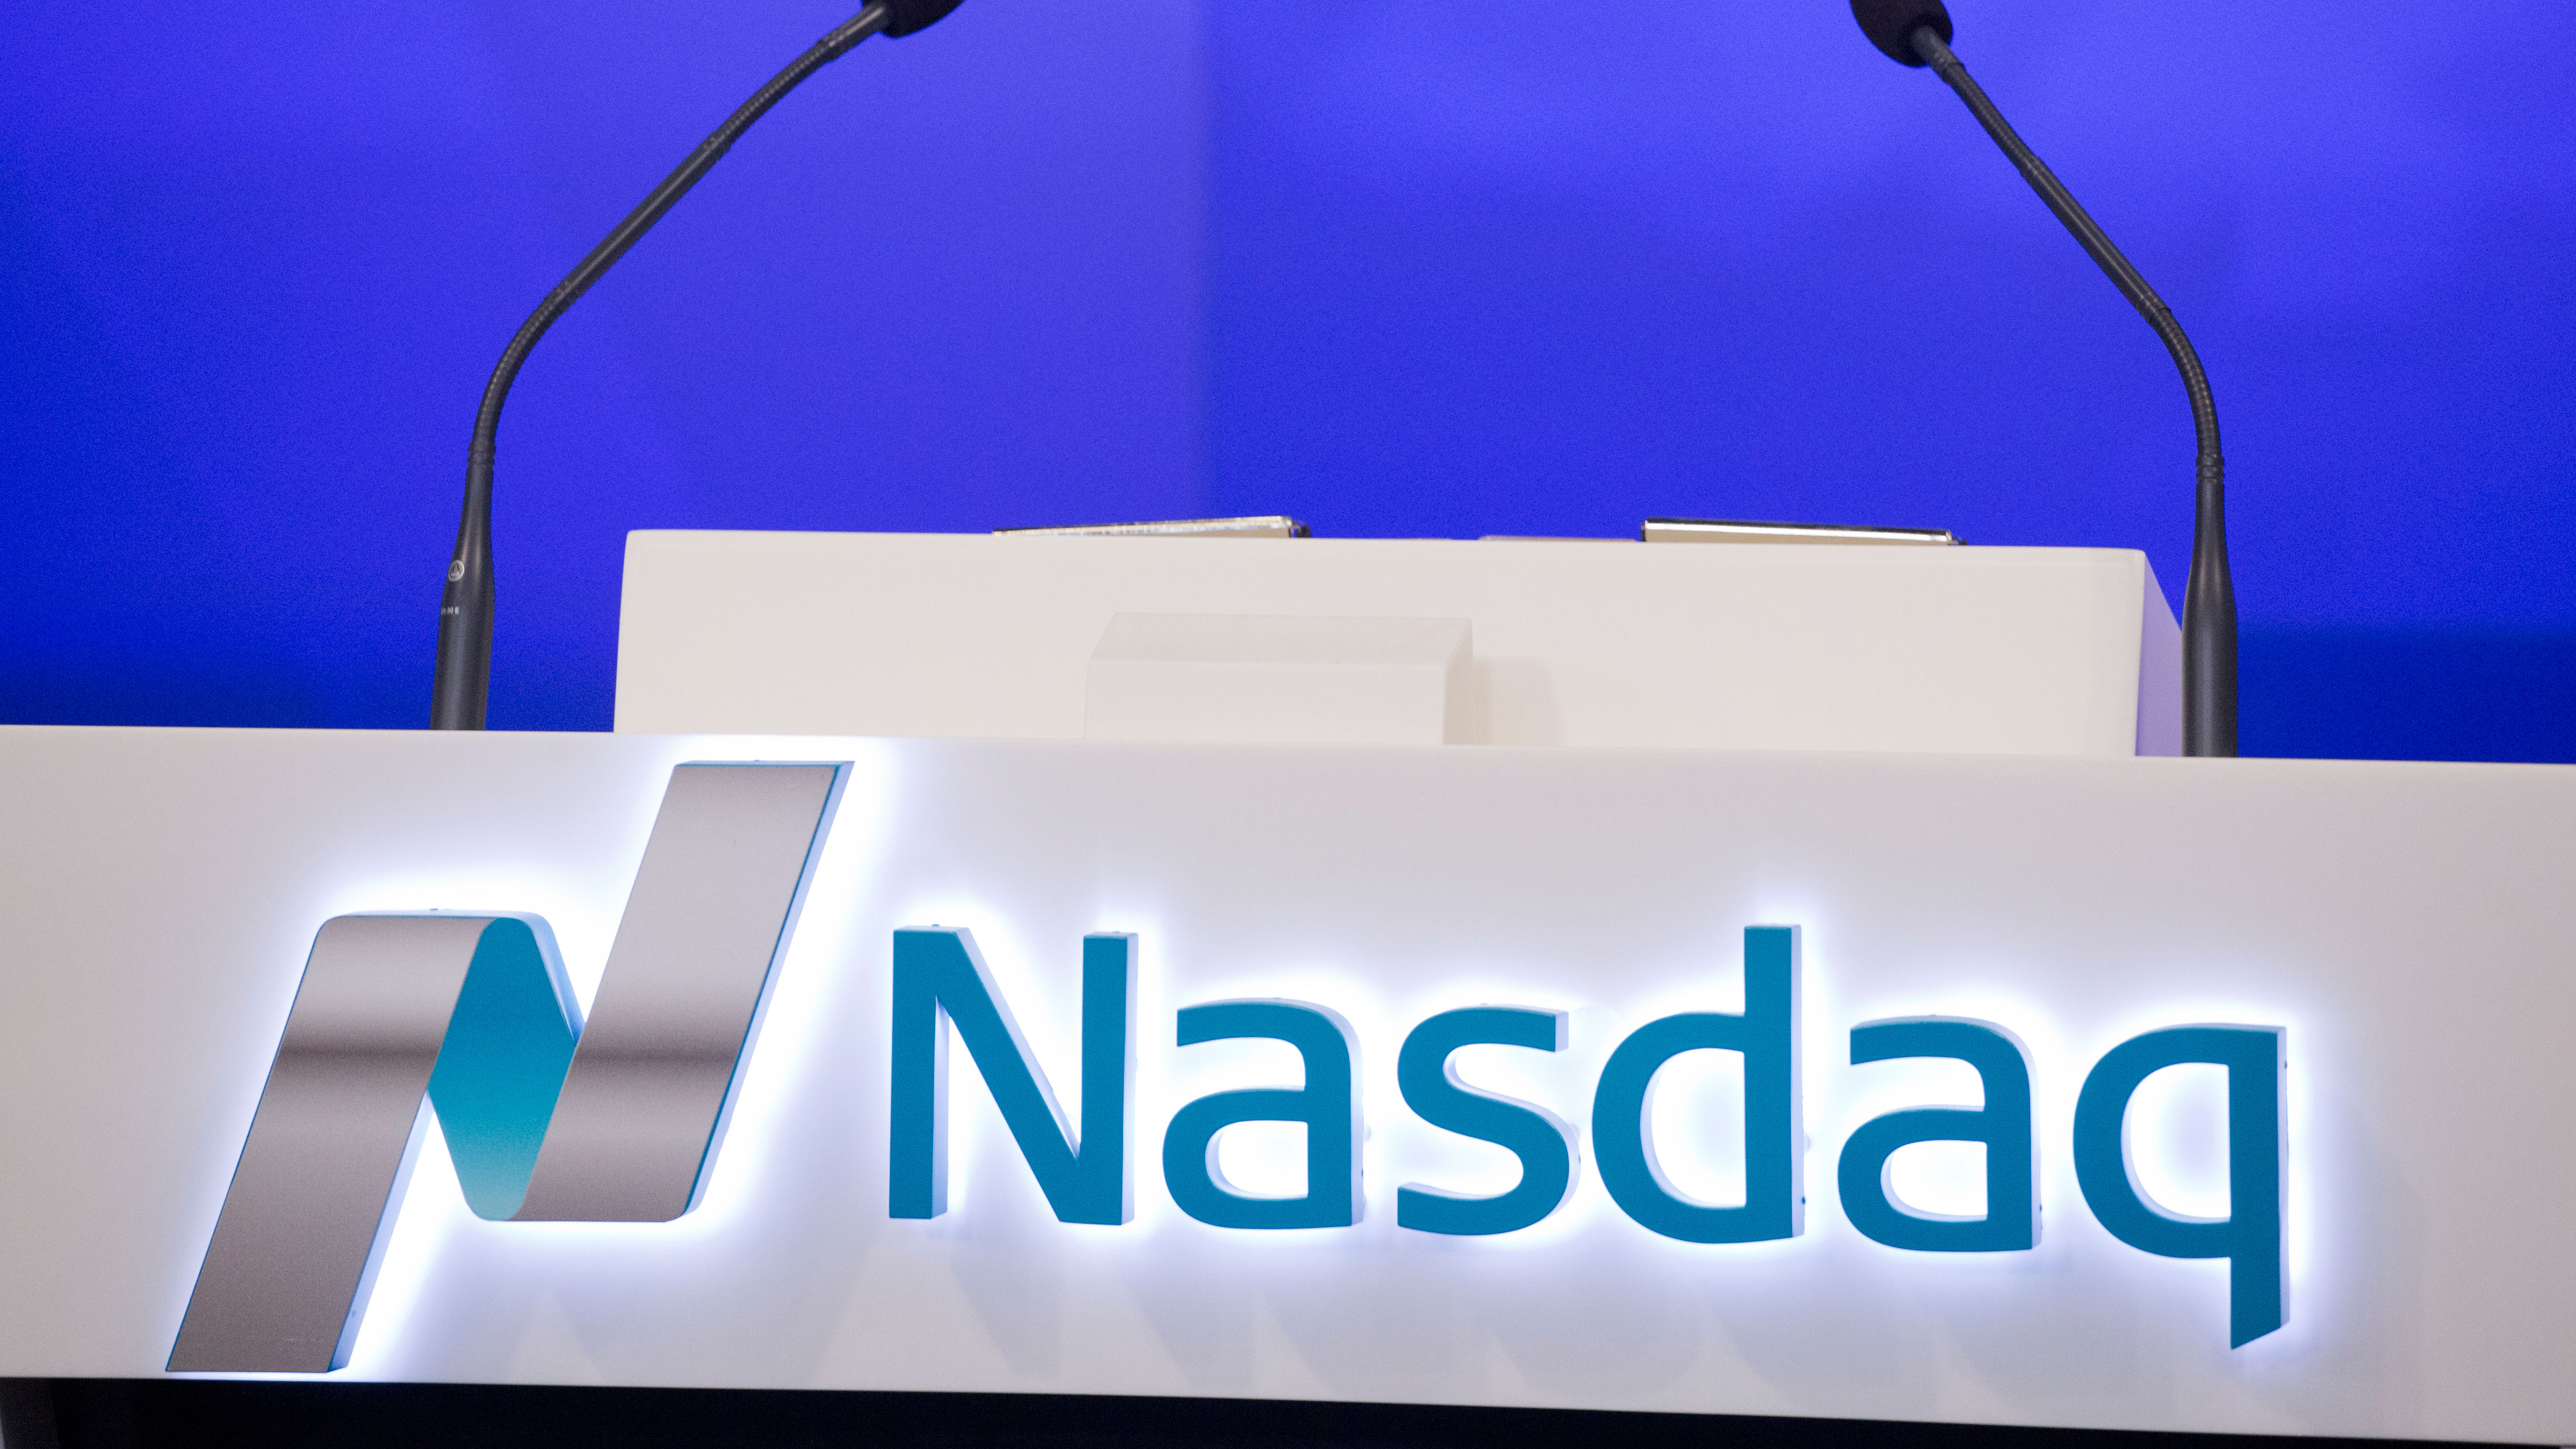 The Nasdaq logo is displayed in the electronic stock trading company's Times Square location, Monday, Nov. 30, 2015 in New York. (AP Photo/Mark Lennihan)